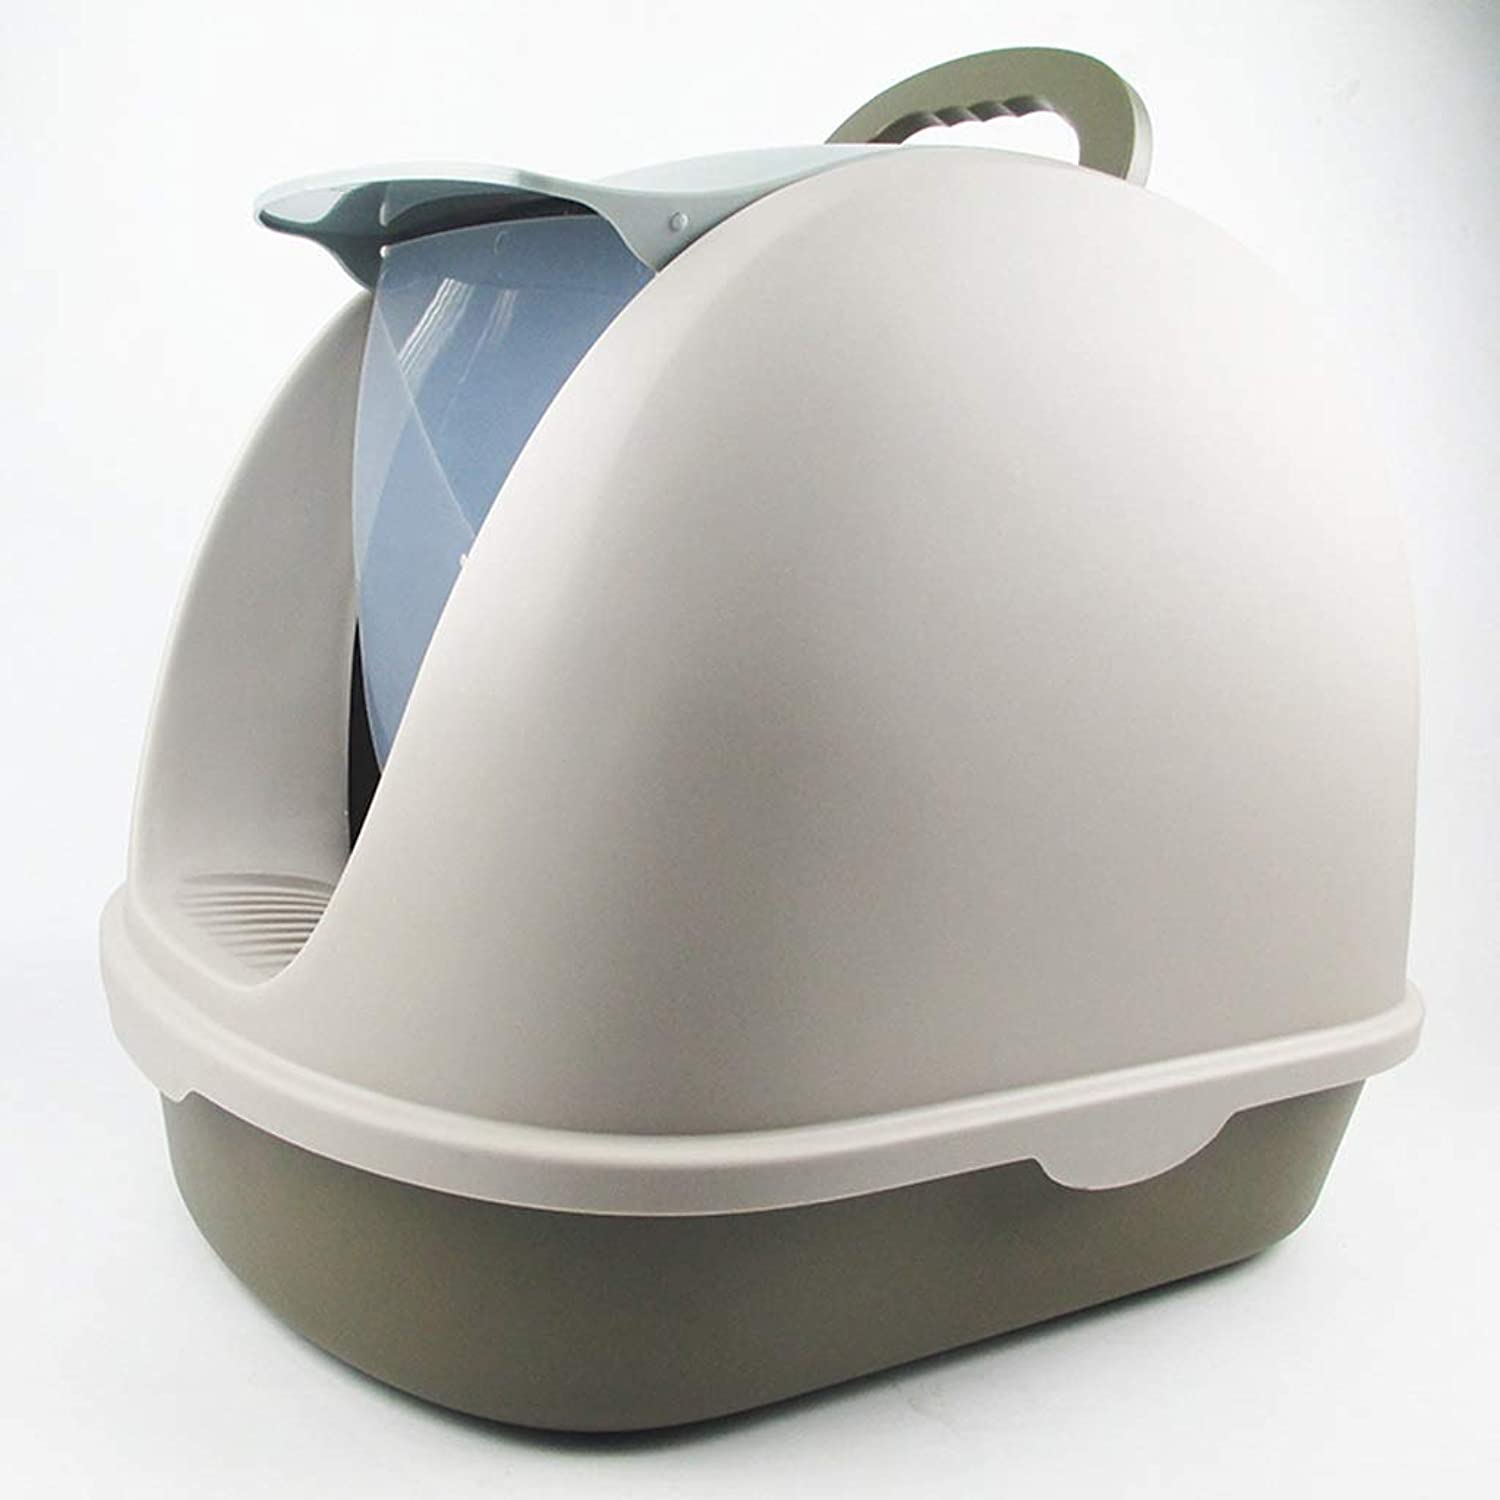 Cat Litter Boxes Fully Enclosed Litter Box, Large Cat Pull Basin Sand Basin Deodorant Cat Toilet Cat Supplies (color   Coffee color)